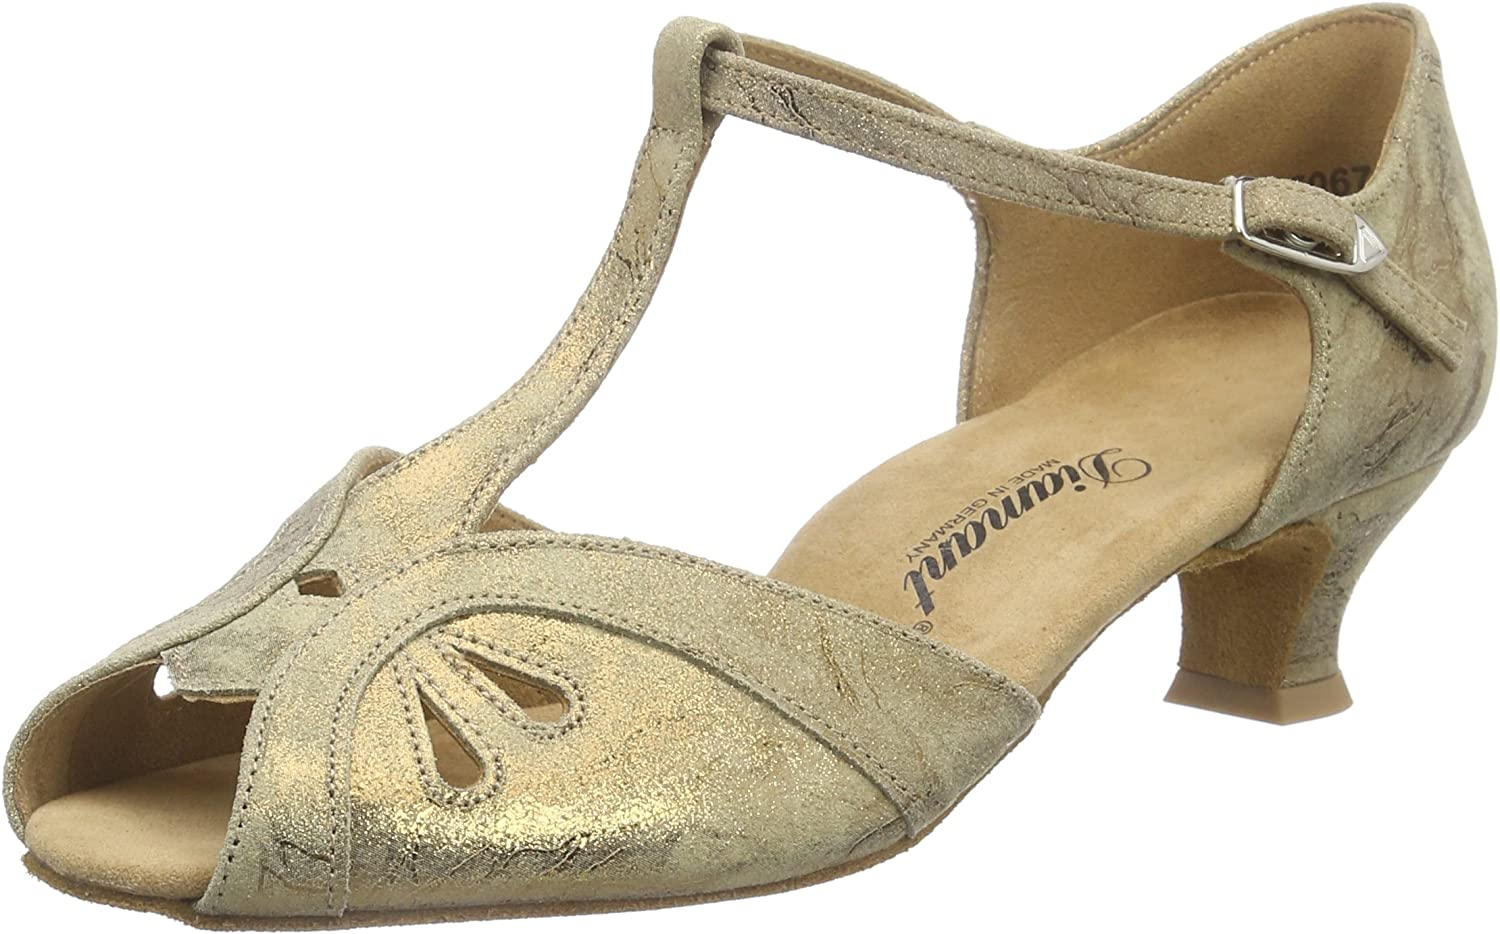 Diamant Damen Tanzschuhe 019-011-311, Women's Ballroom Dance shoes